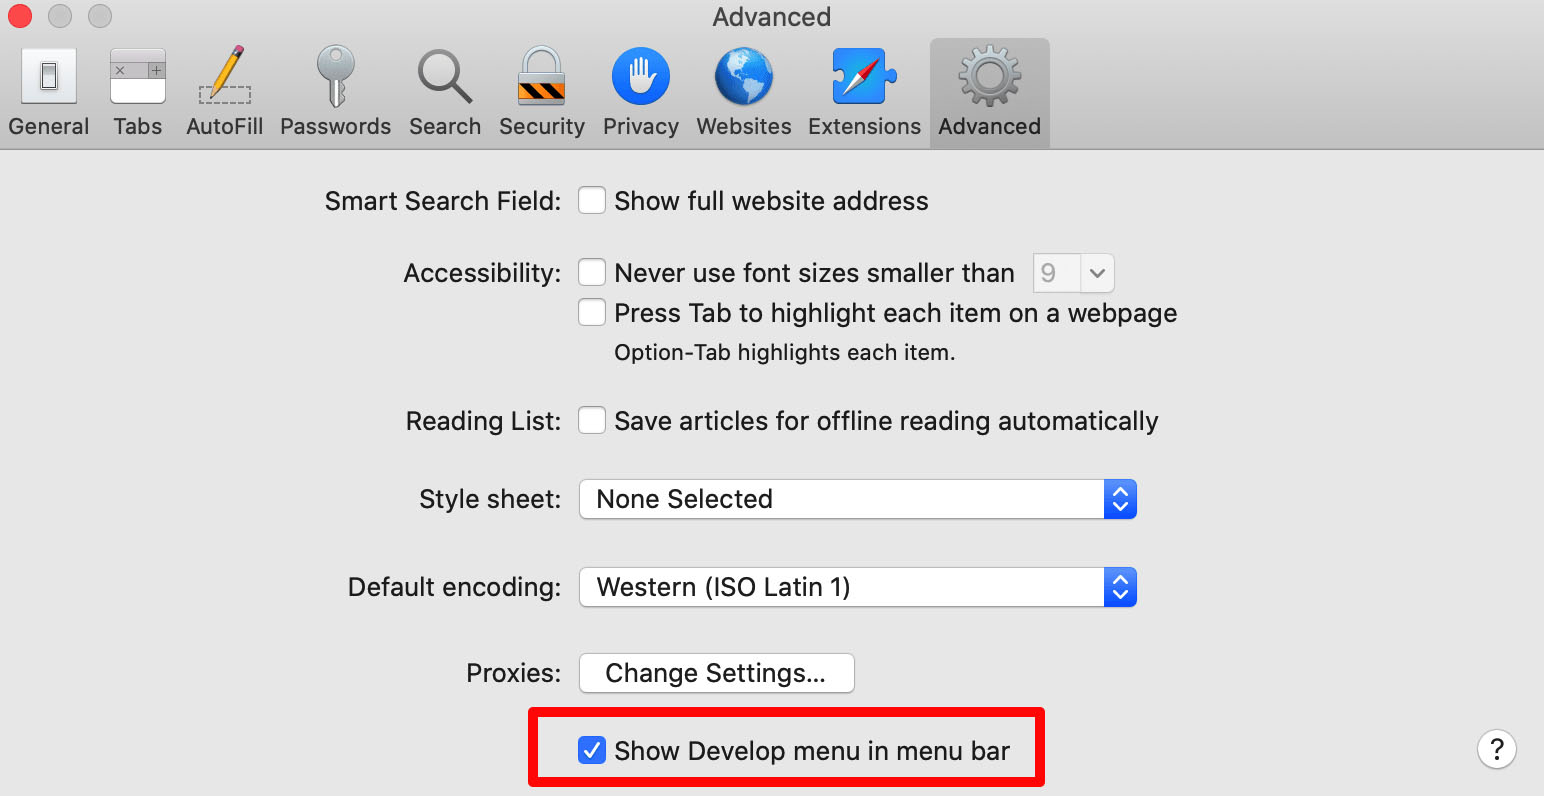 Copy of the advanced Safari settings